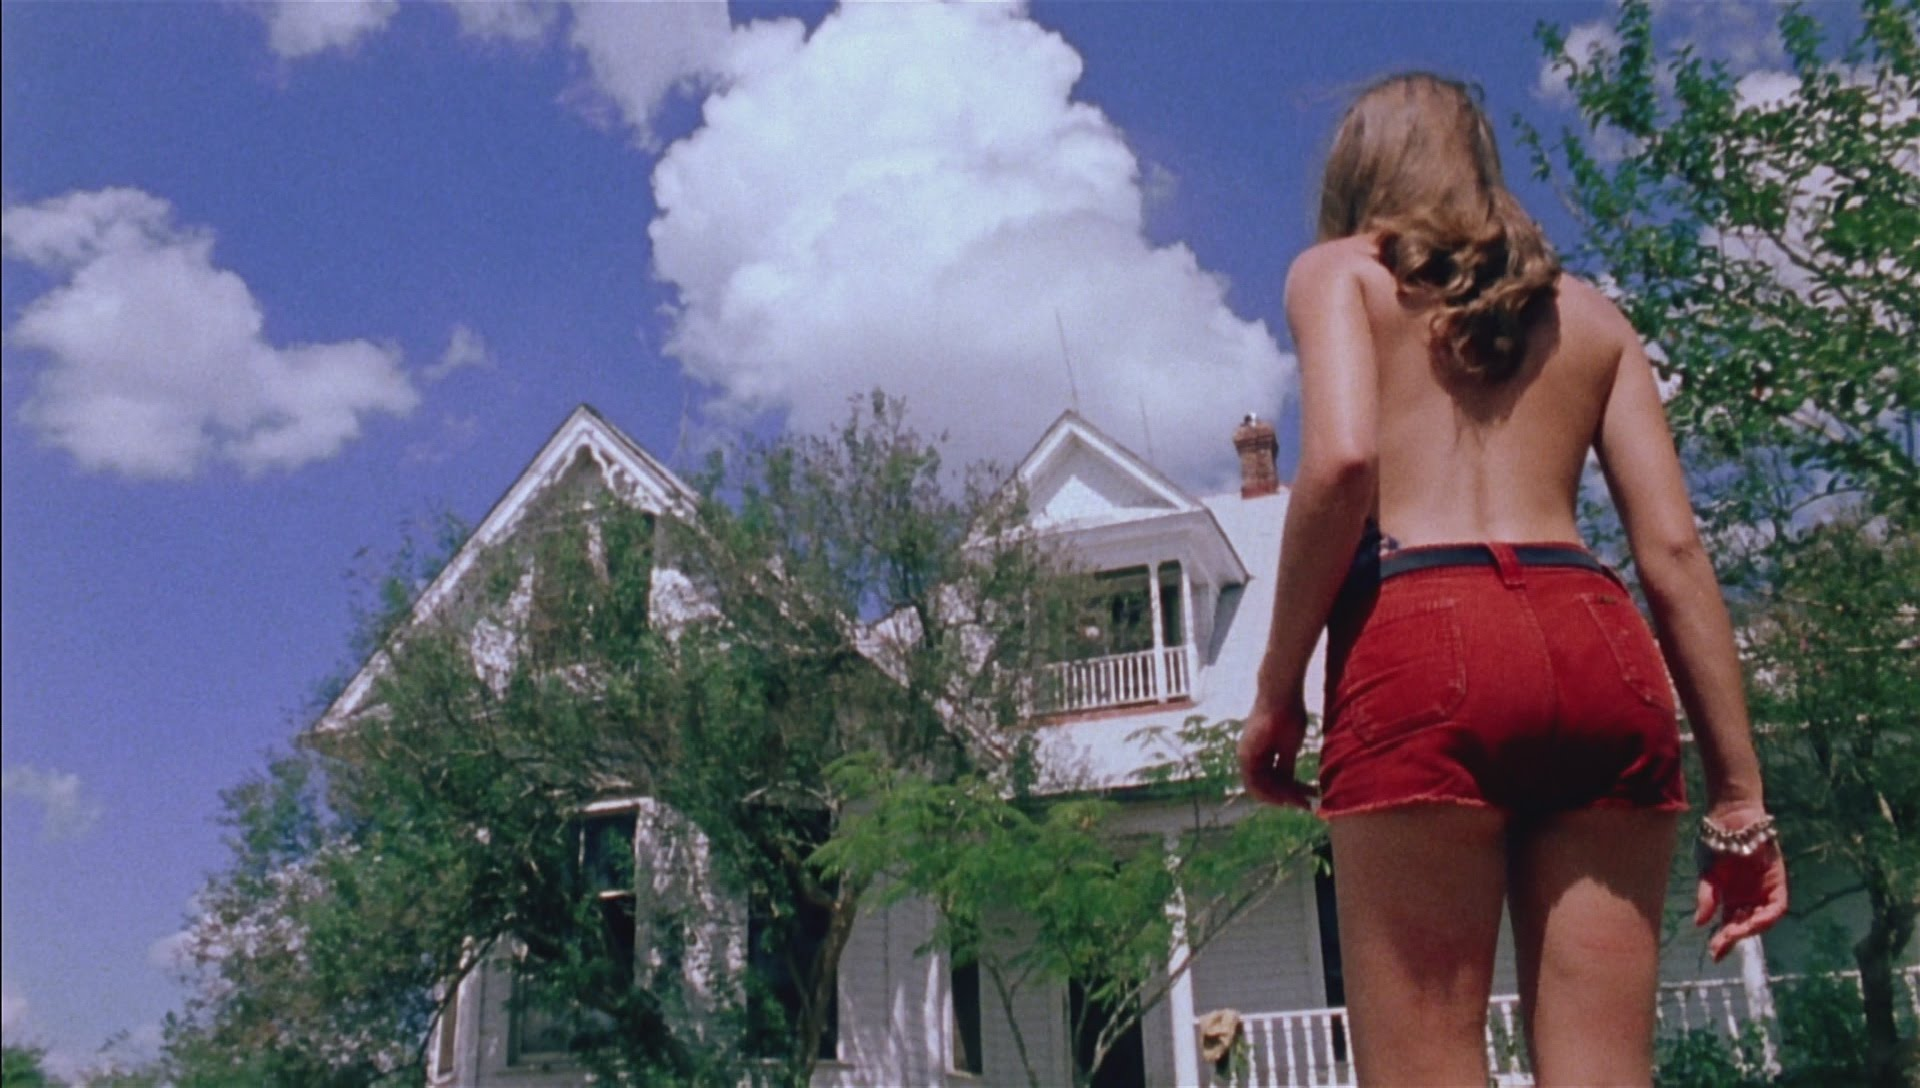 tcm knetter 4 - A Look Back at The Texas Chain Saw Massacre Part 1